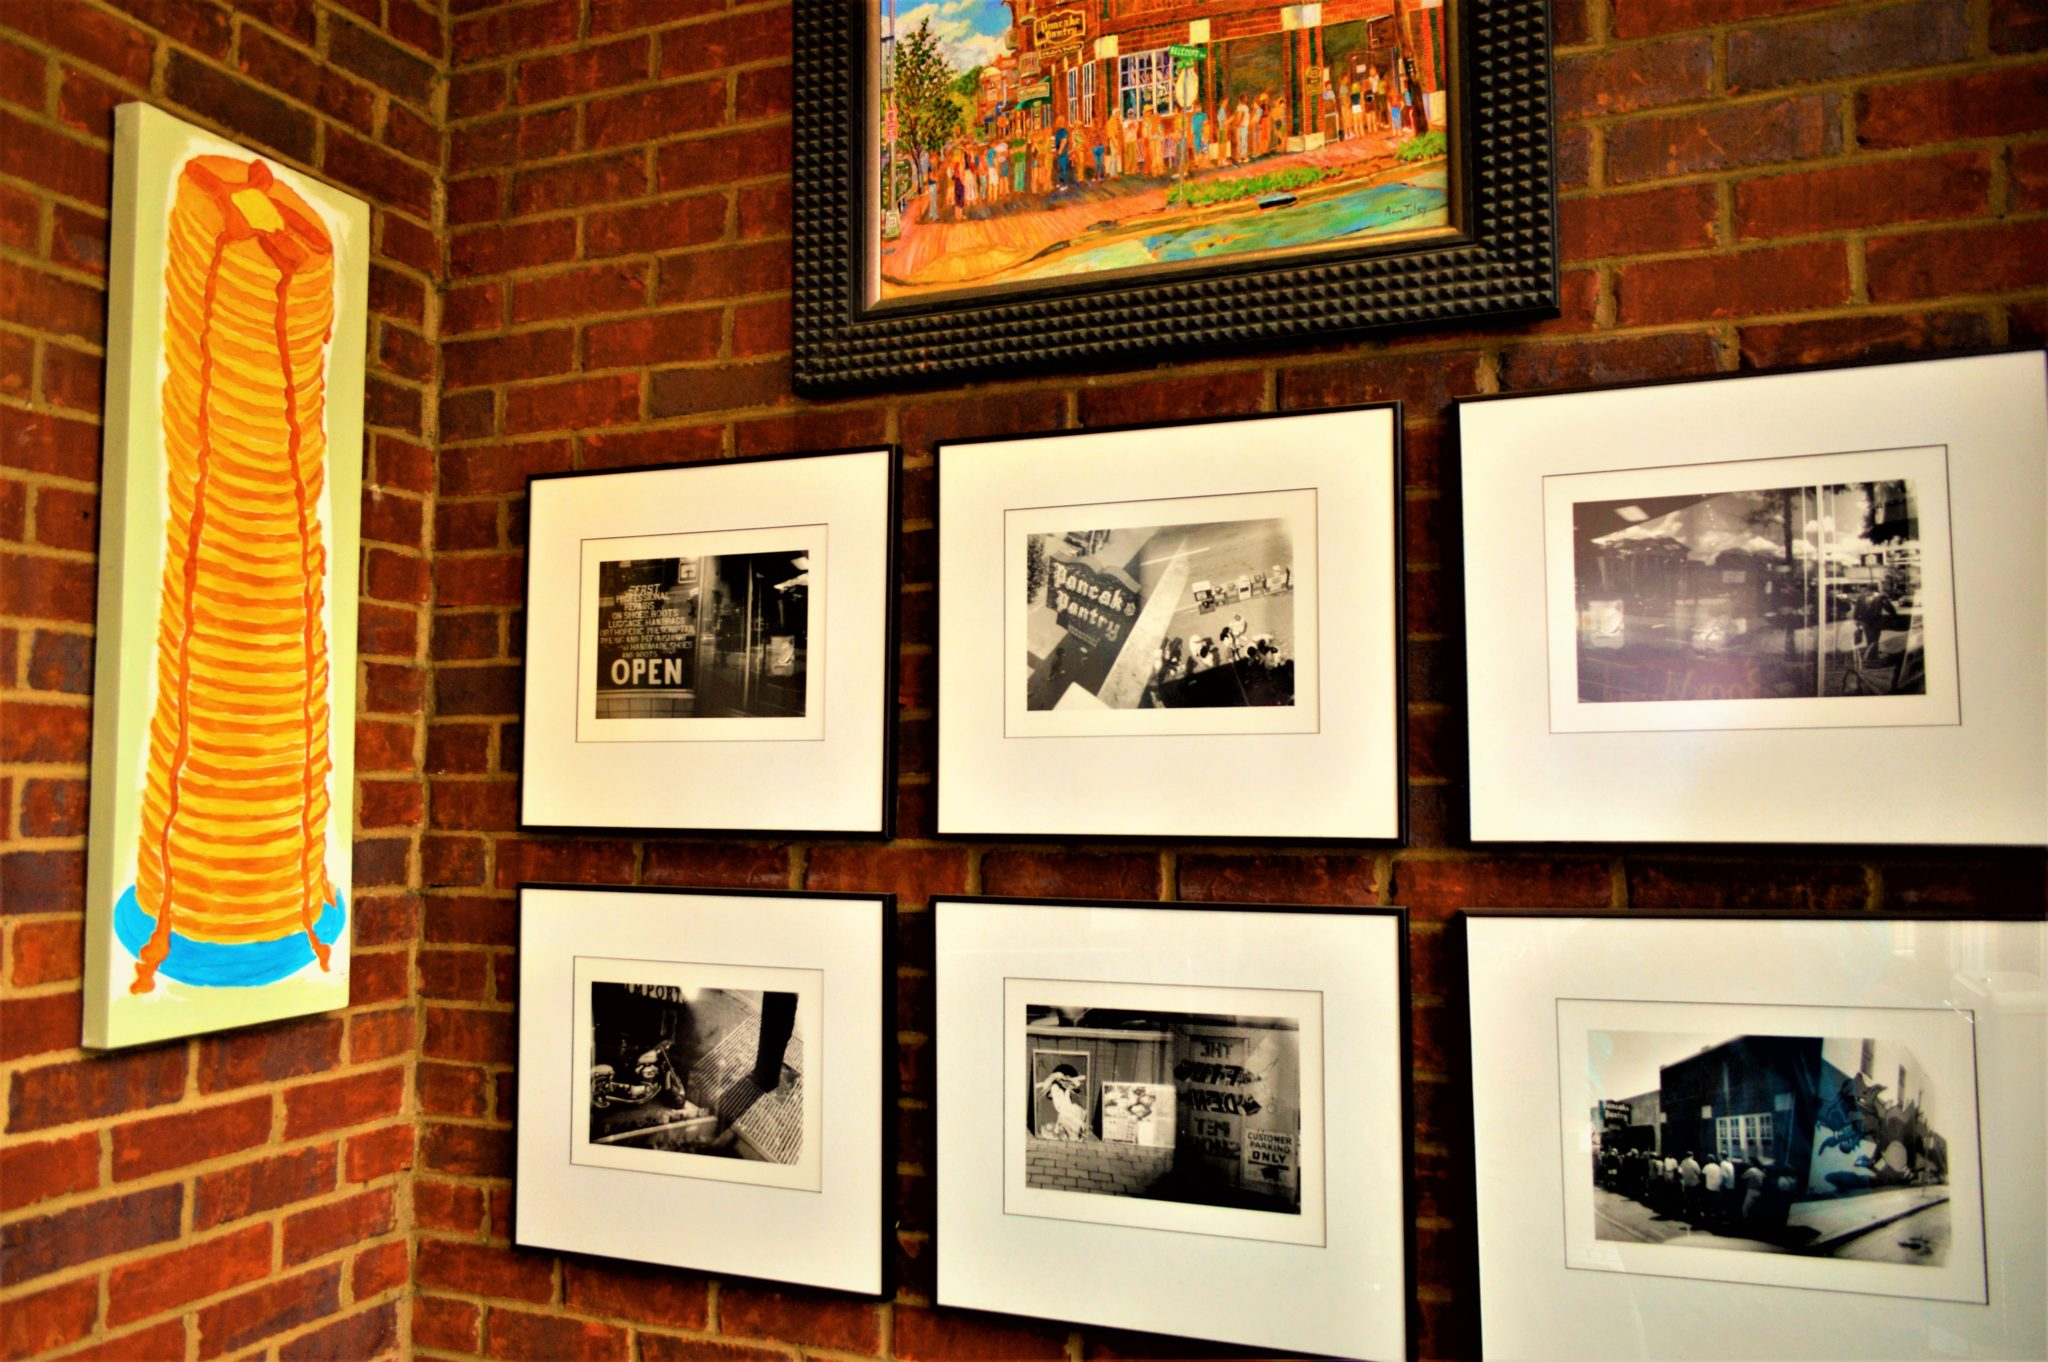 Pictures at the Pancake Pantry, Nashville, Tennessee